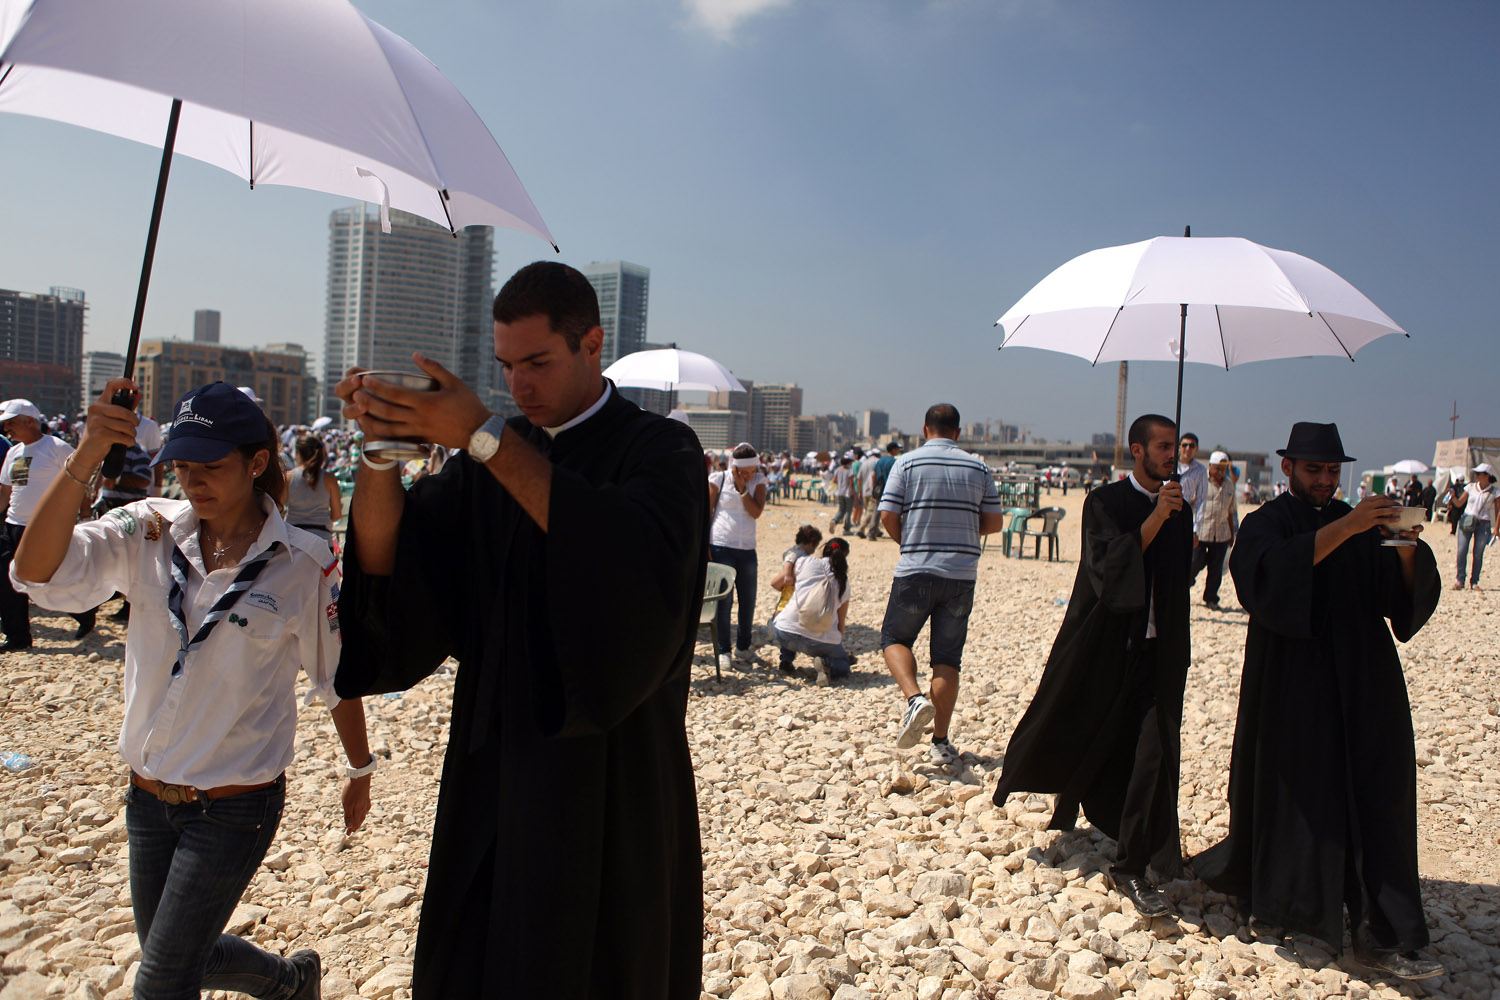 Sept. 16, 2012. Lebanese Catholic priests walk under umbrellas as they head towards the crowd to give the Eucharist during a mass led by Pope Benedict XVI at Beirut's waterfront.